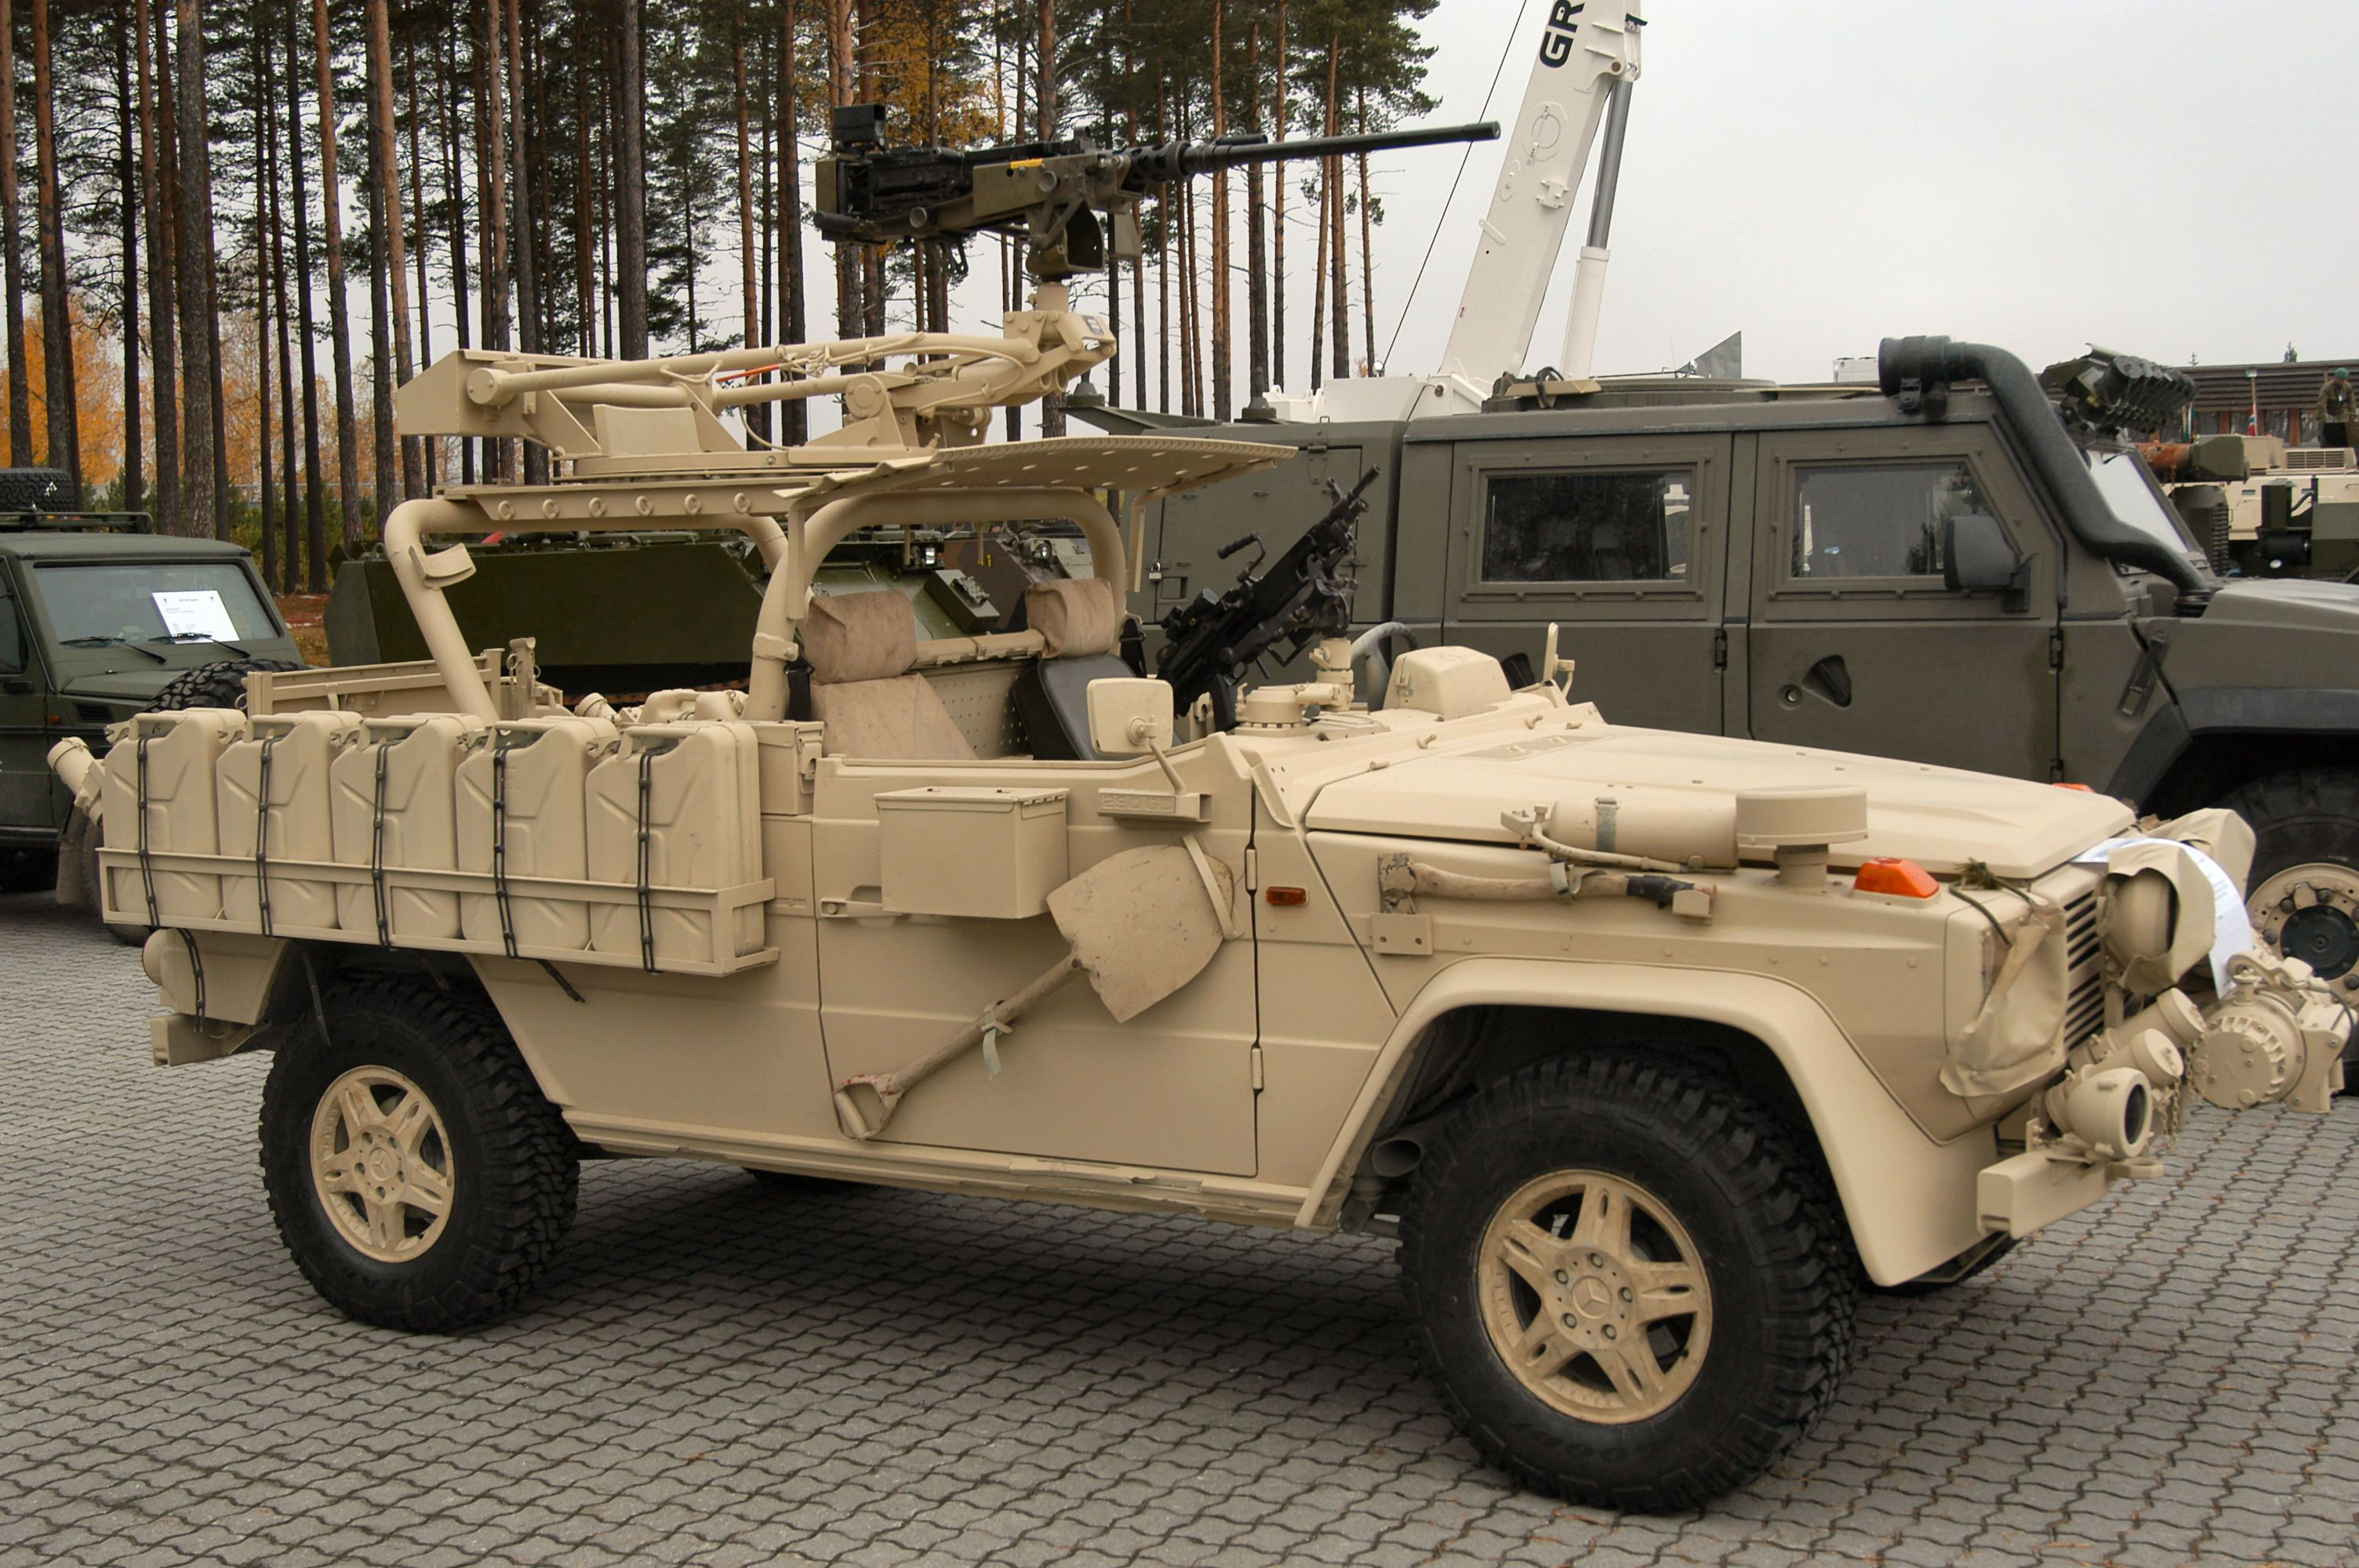 Pin by Eric Gaertner on Special operations vehicle